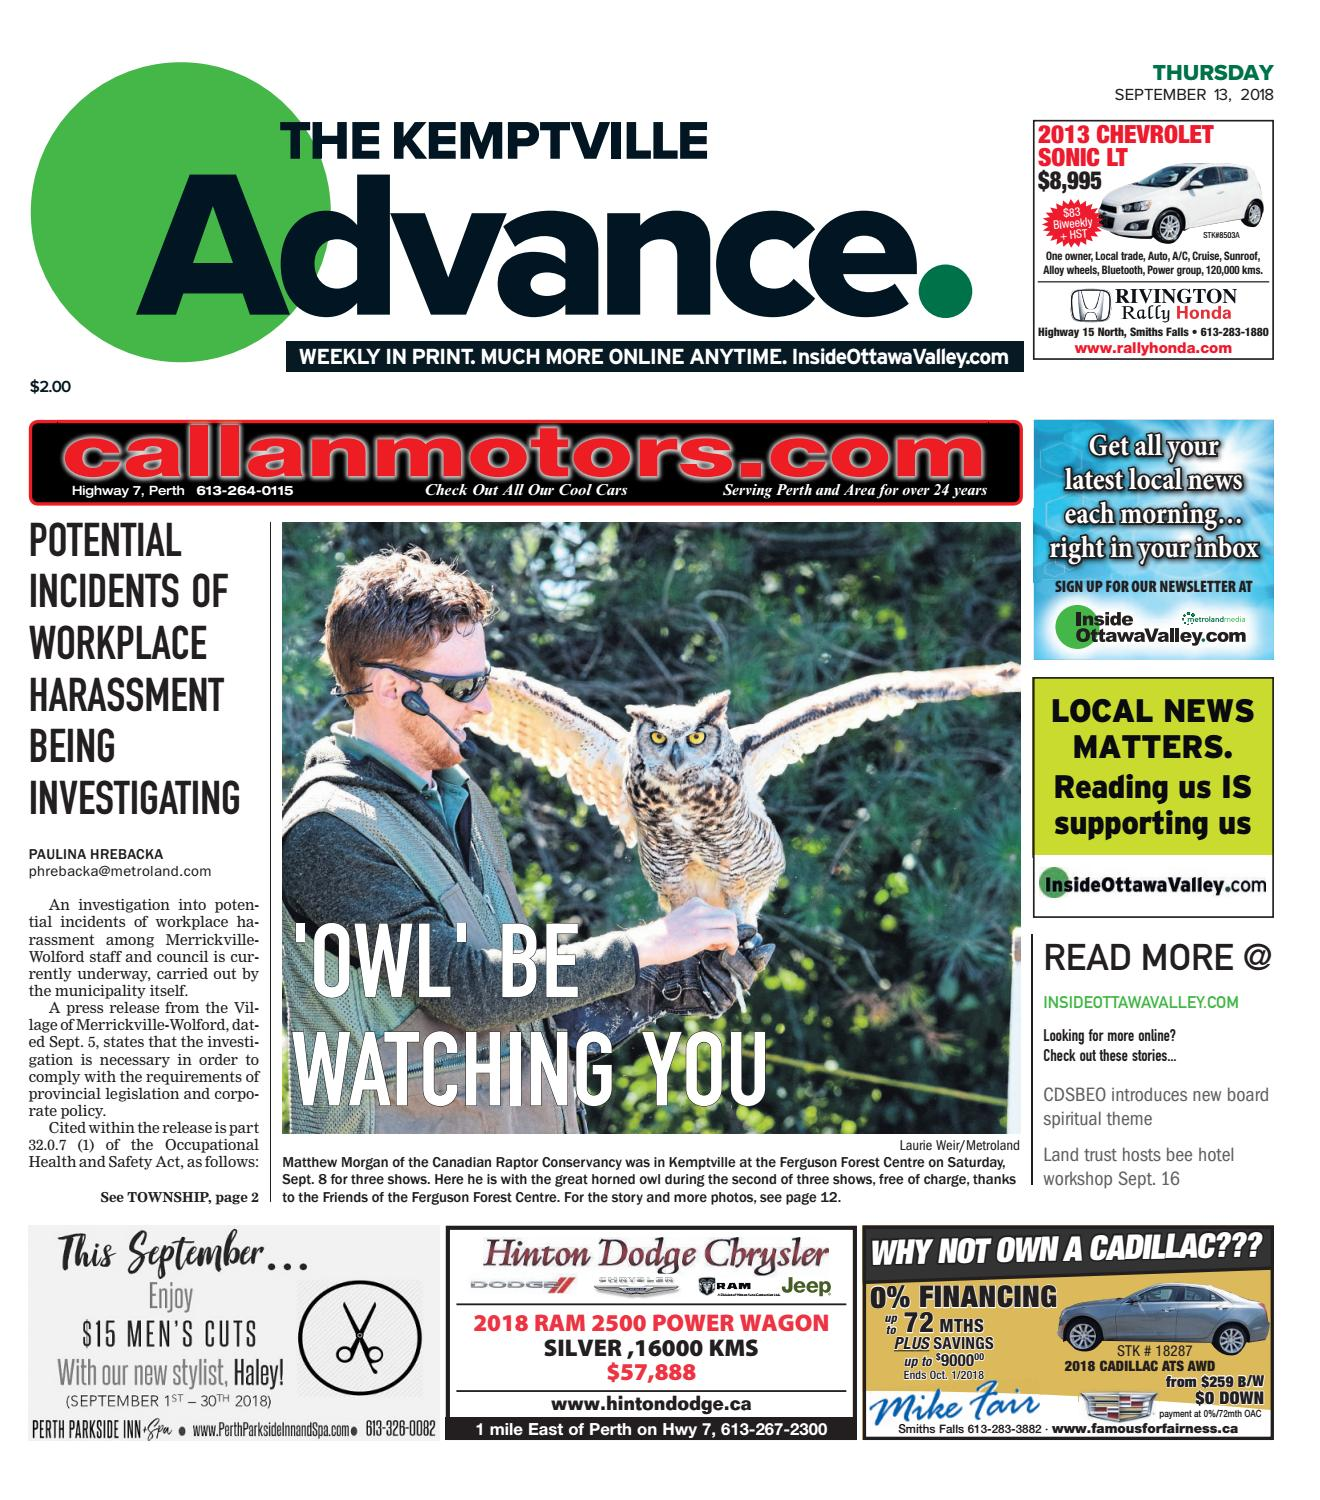 Kemptville Issuu East By a Advance k Metroland Otv 20180913 Rq5AL34j